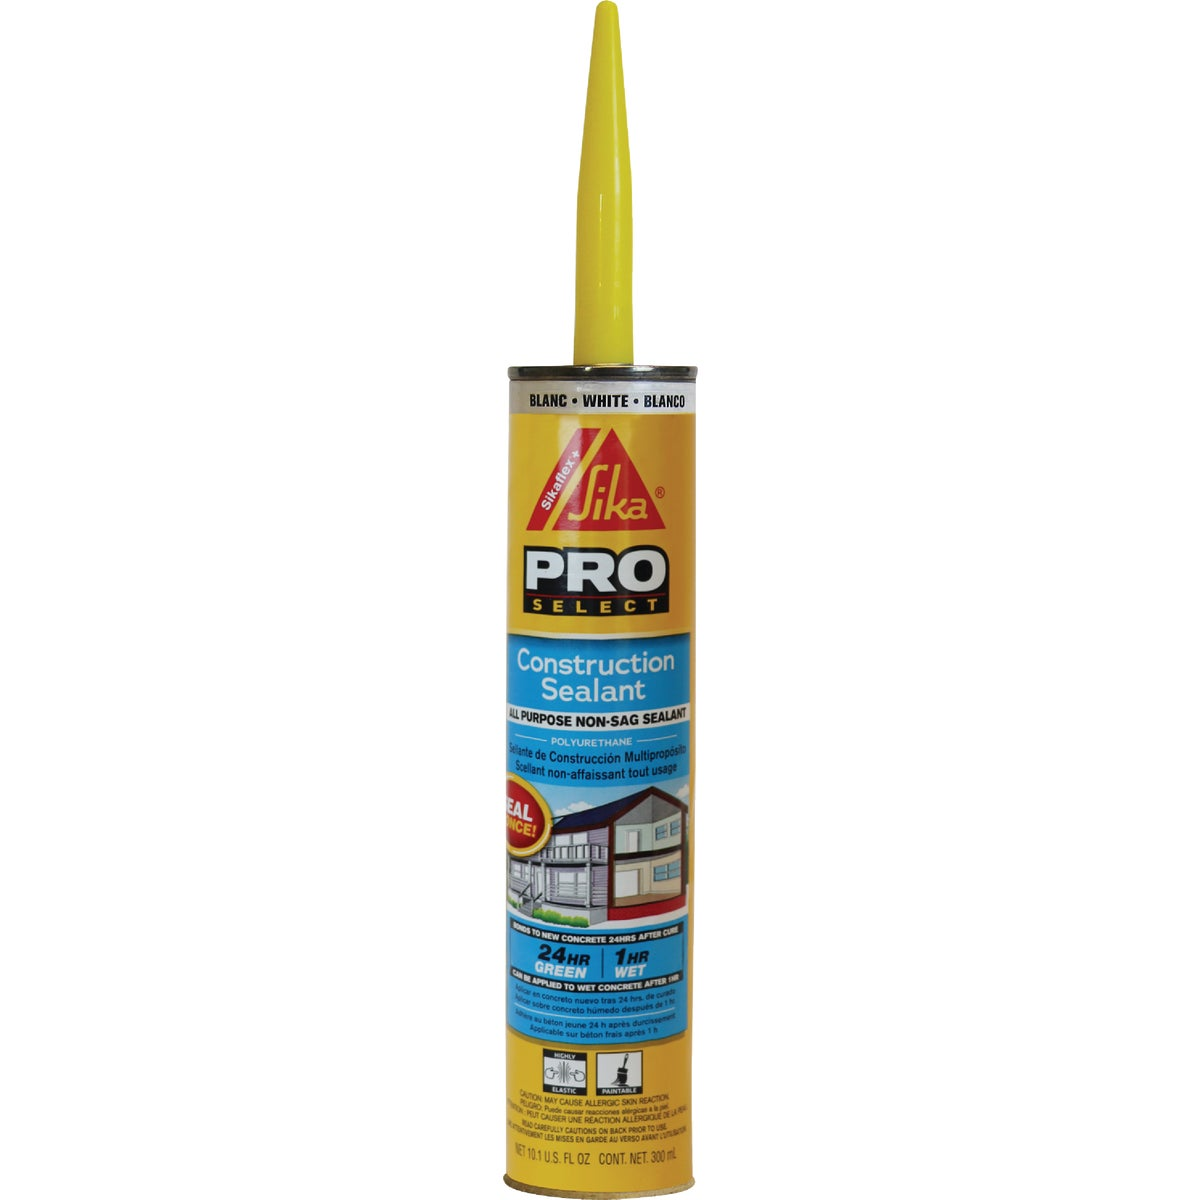 10 Wh Skflx Cons Sealant